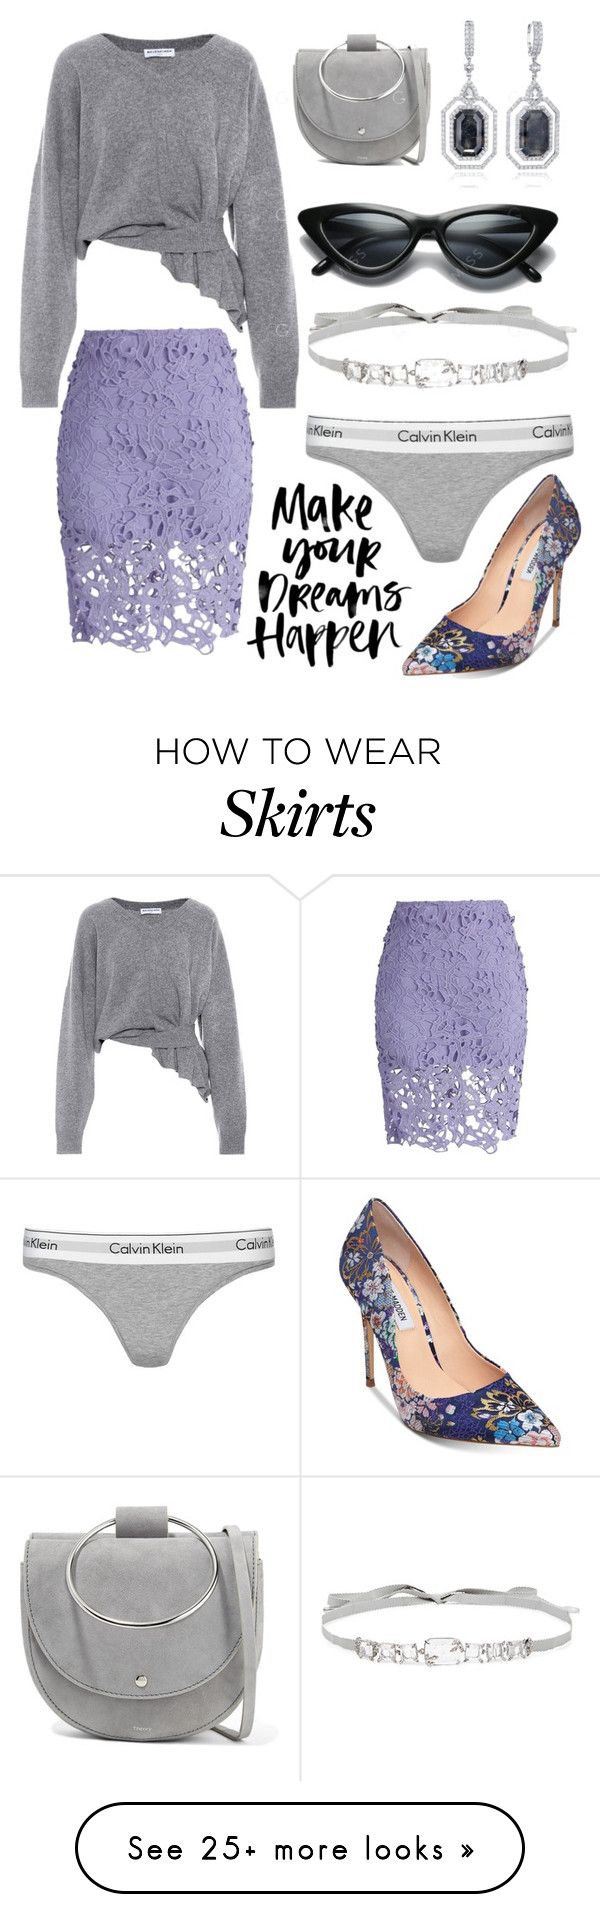 """""""Crochet Lace Skirt"""" by jakenpink on Polyvore featuring Balenciaga, Chicwish, Theory, Jenny Packham, Calvin Klein and Steve Madden"""